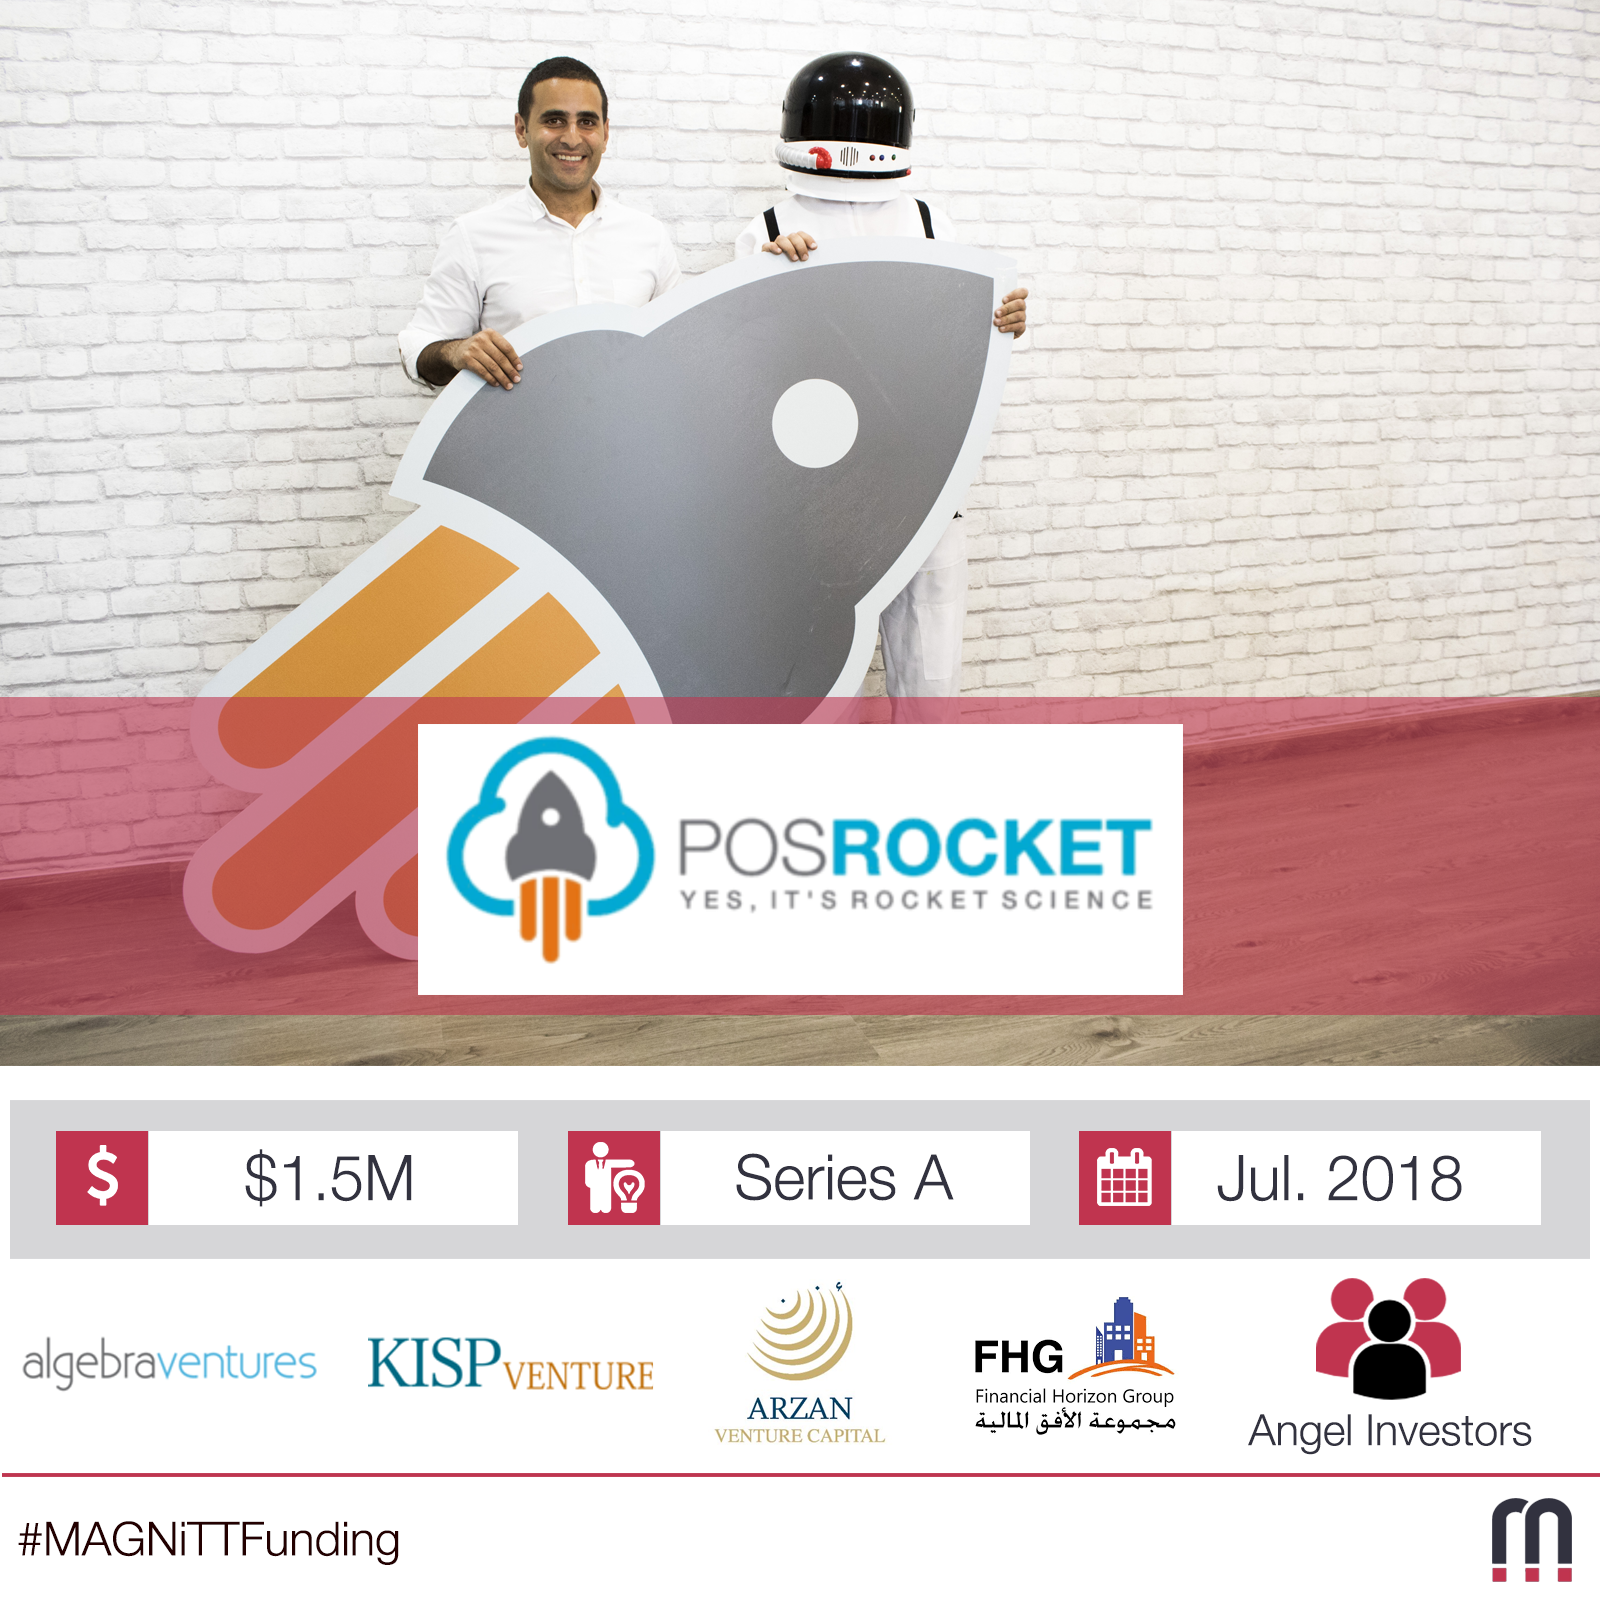 POSRocket, a cloud-based Point-of-sale platform, raises $1.5 million in round led by Algebra Ventures